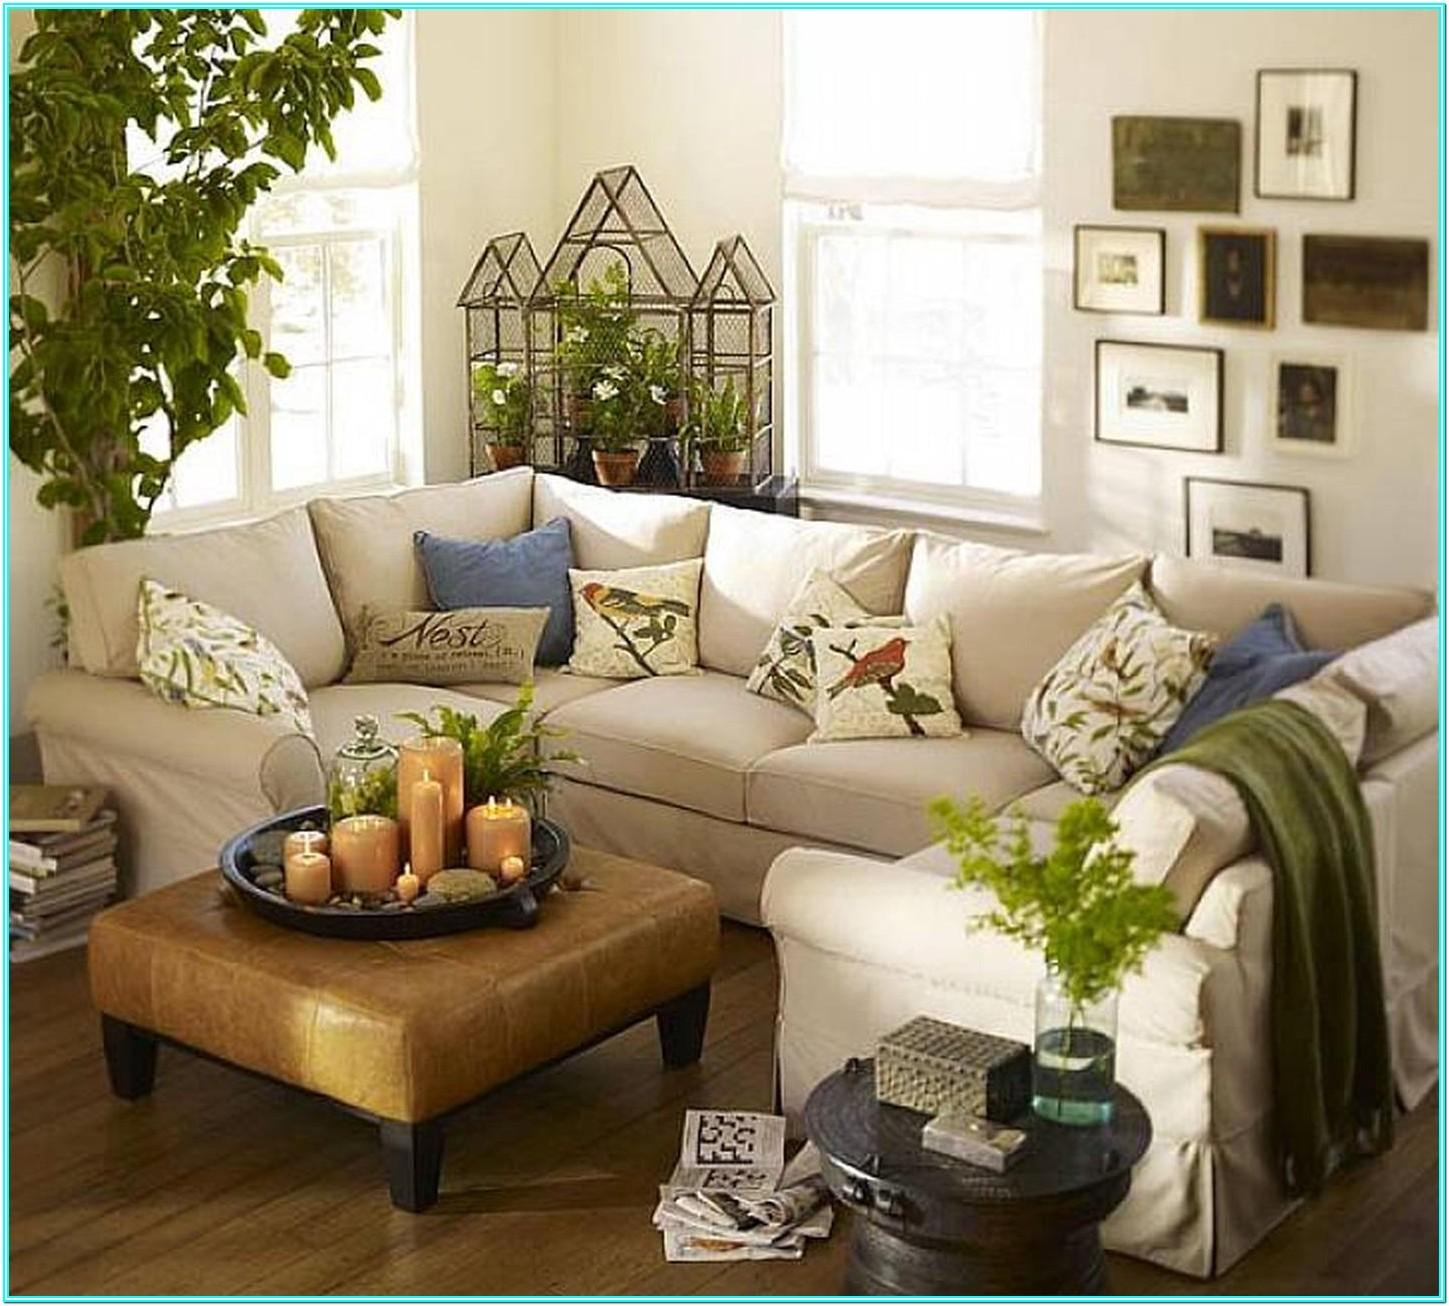 Living Room Design Ideas With Plants